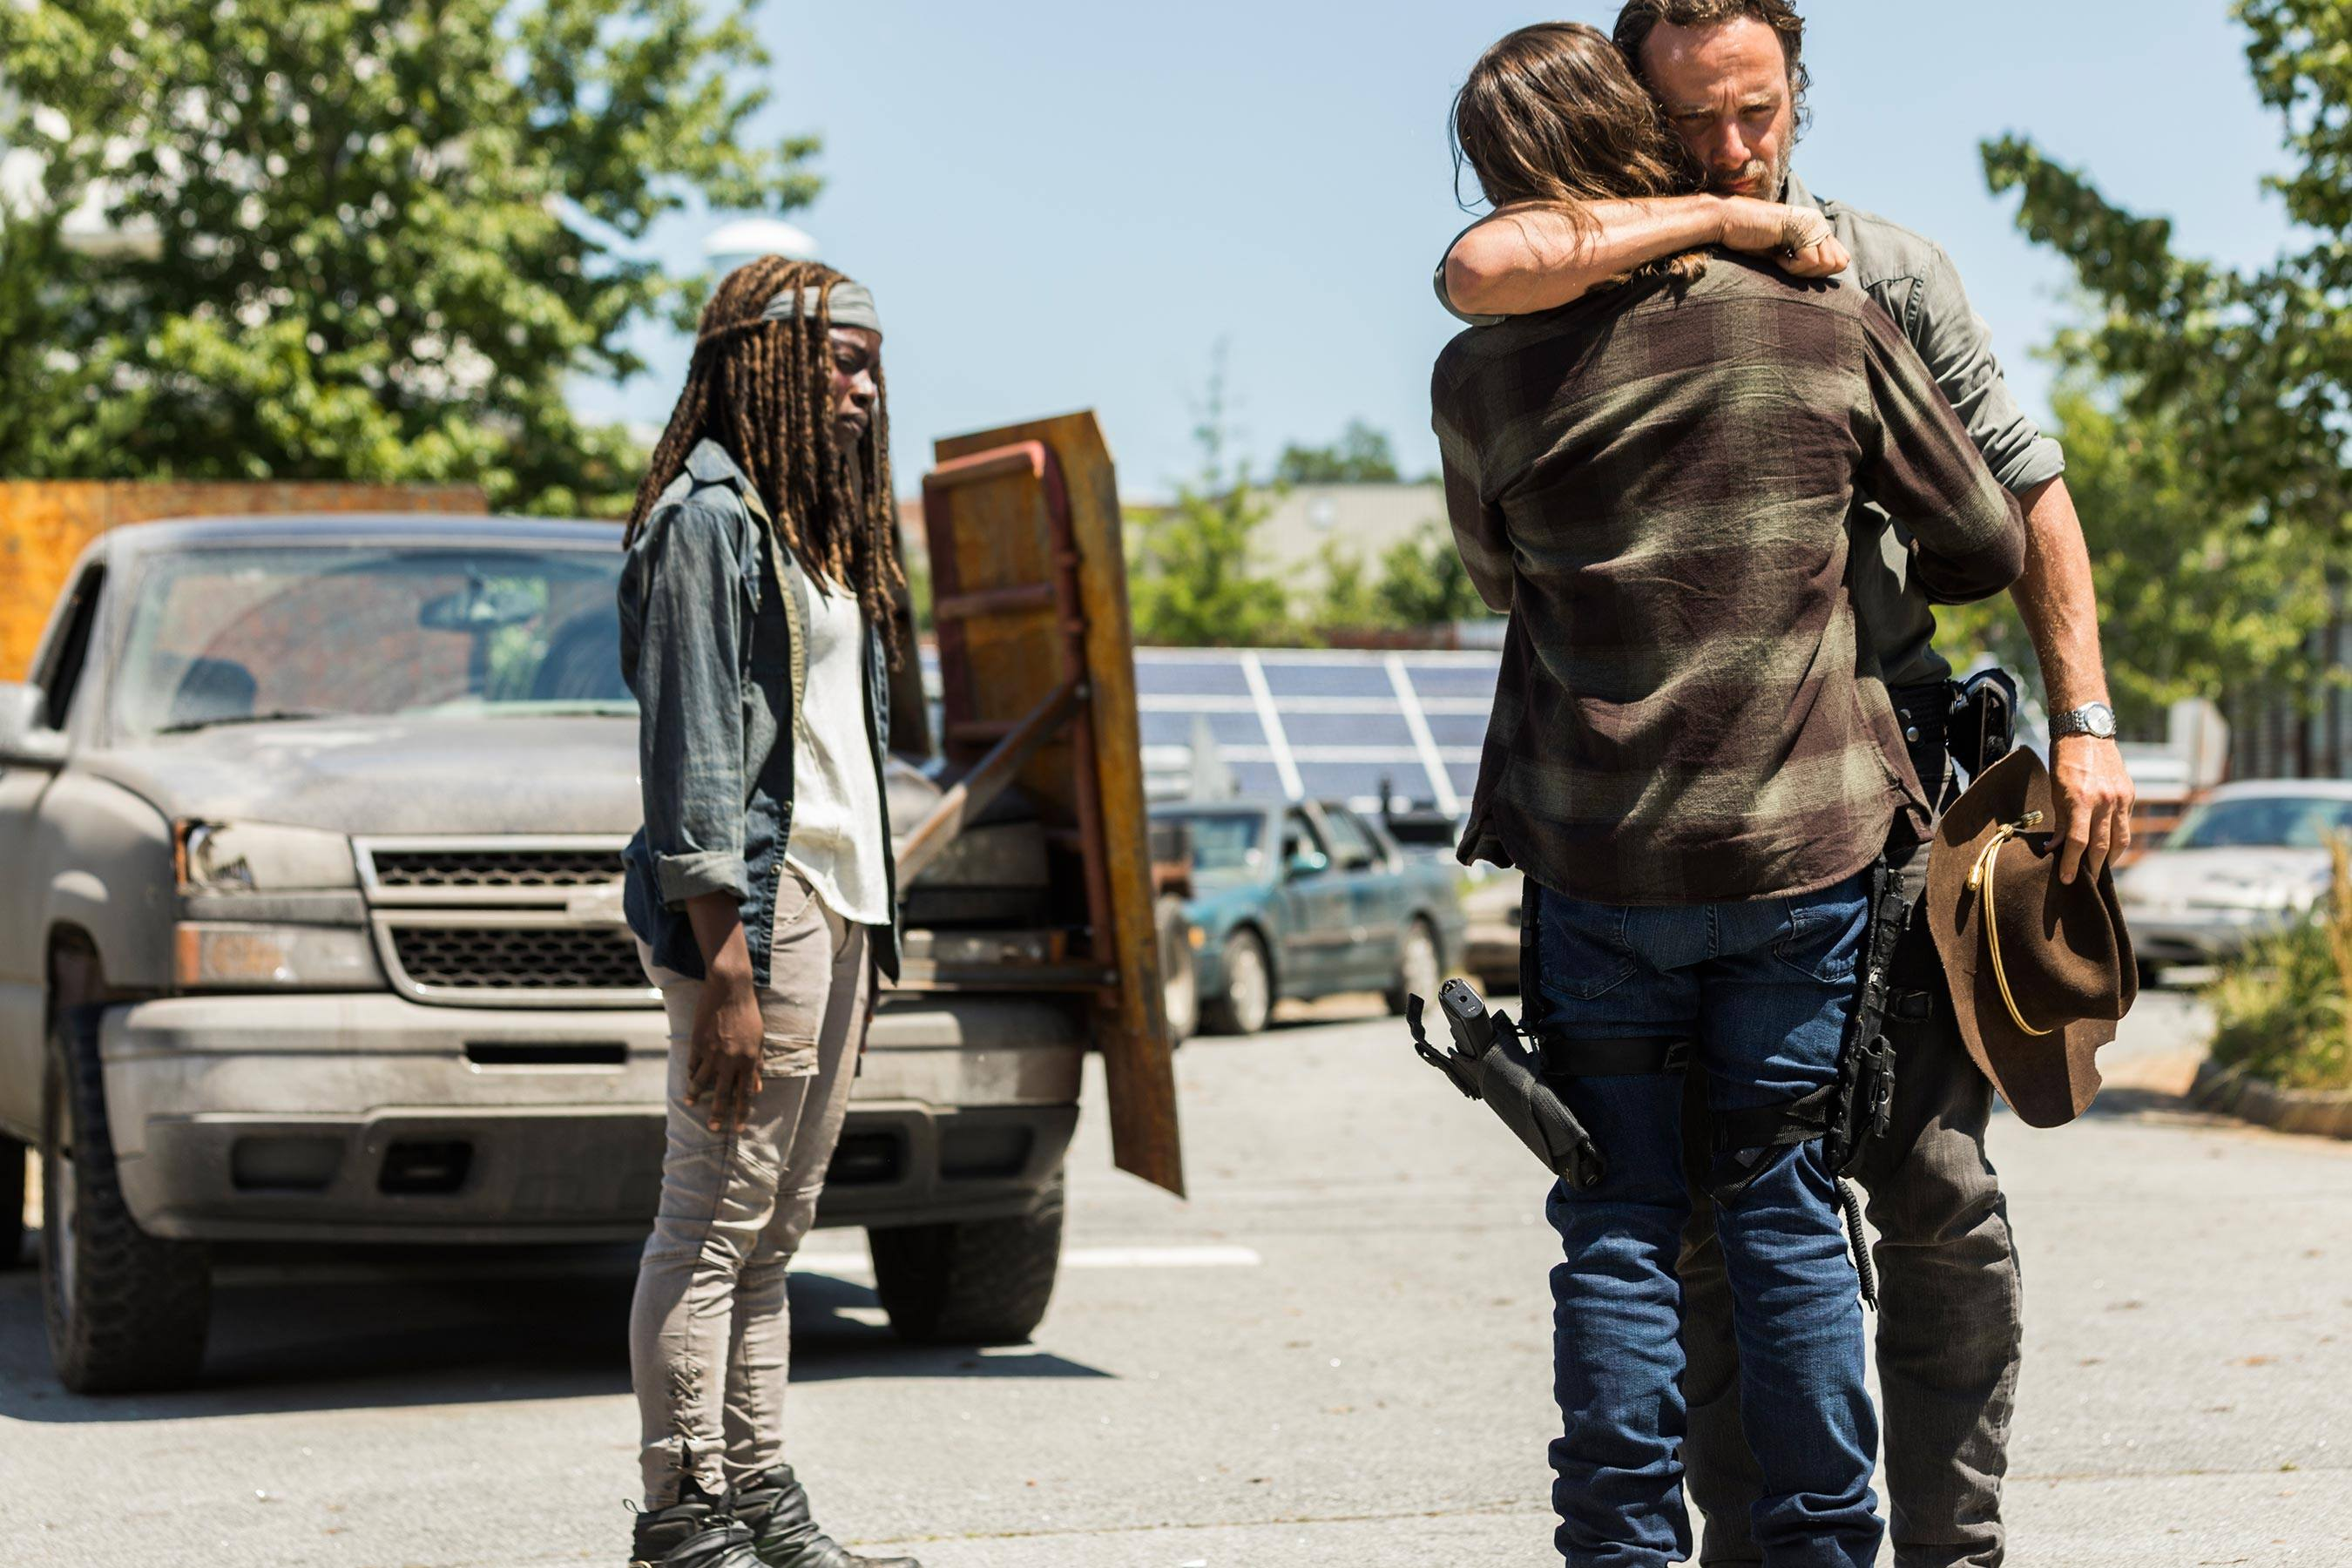 Carl and Rick embrace while Michonne stands away from them